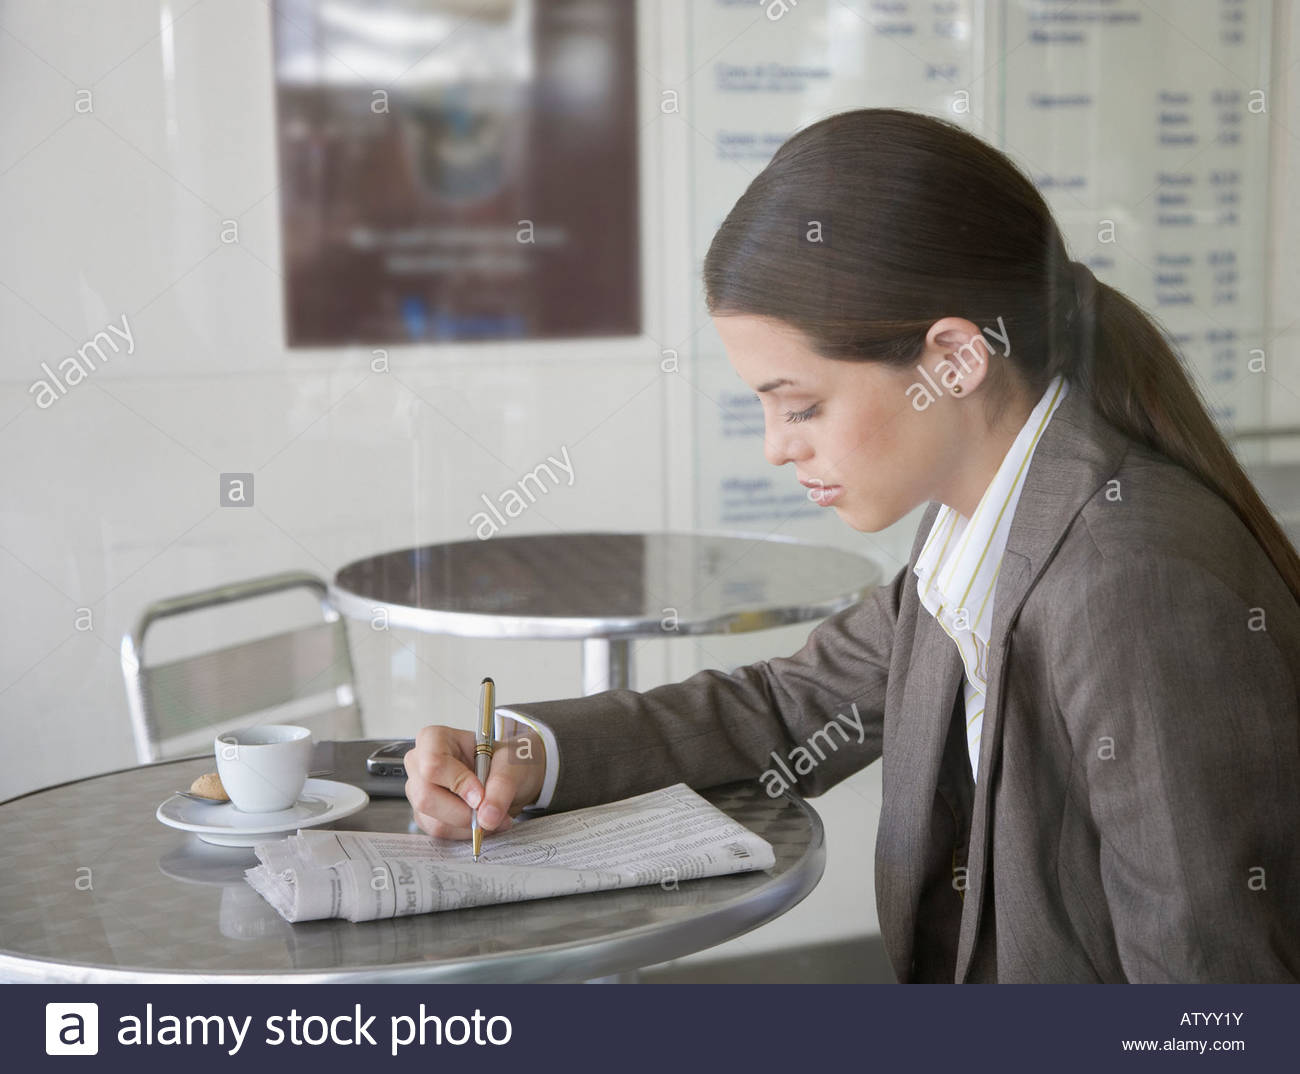 Businesswoman in cafeteria with newspaper - Stock Image